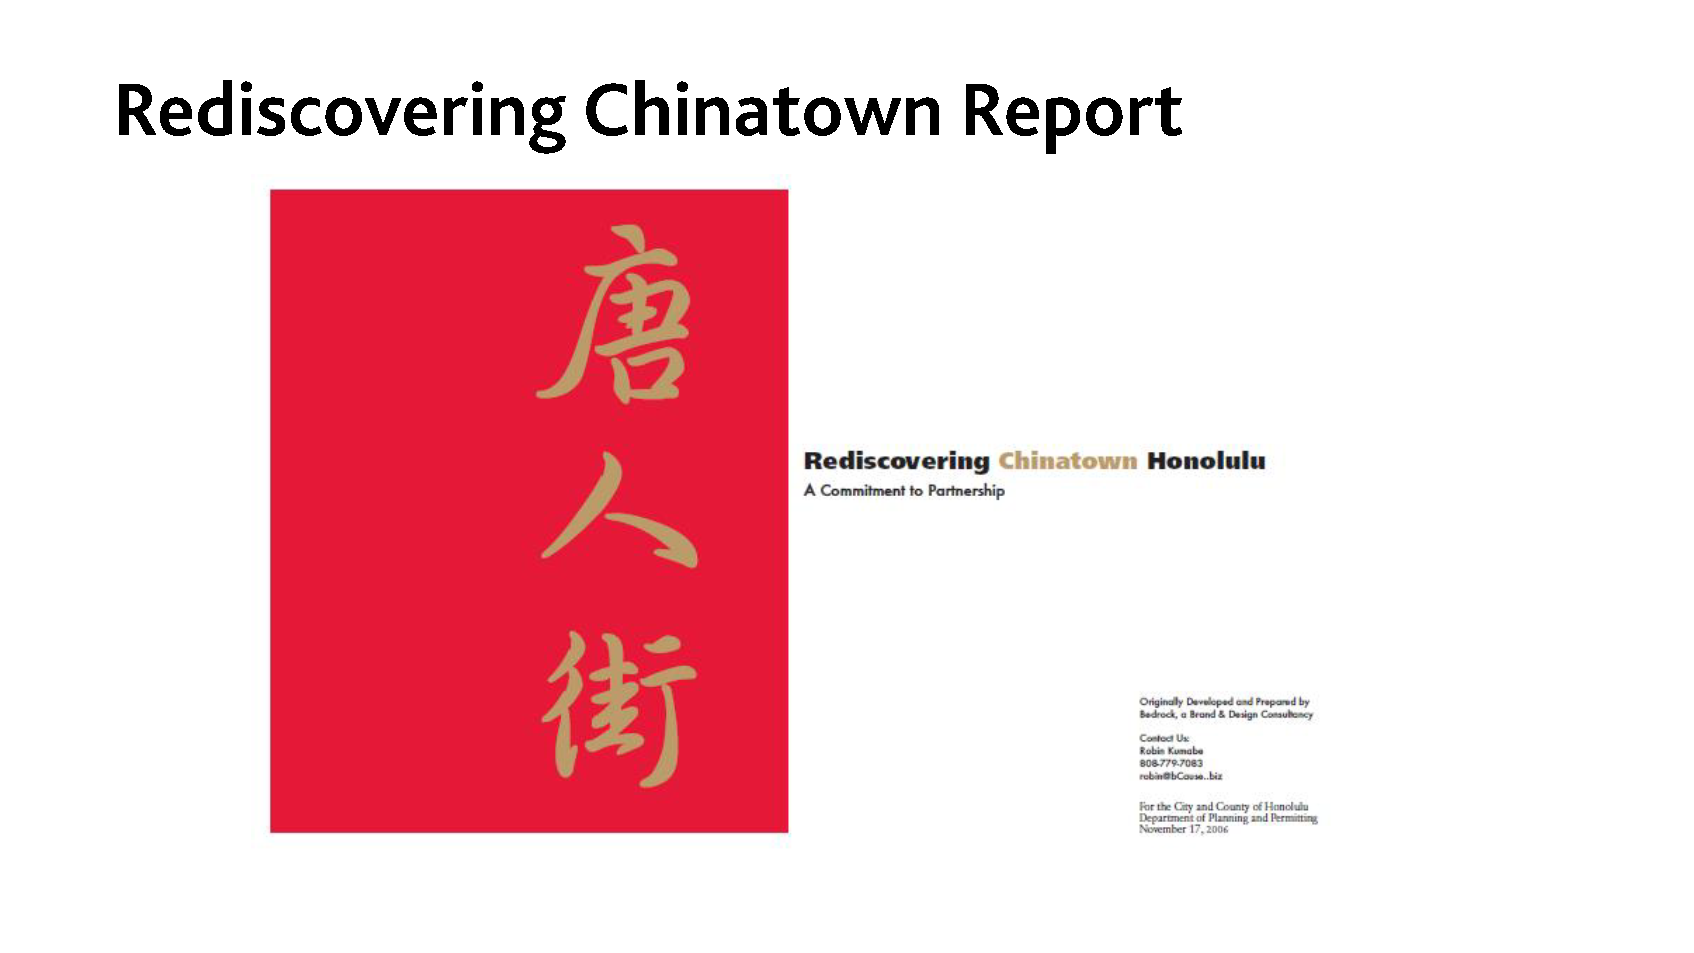 SHADE_PID_ASLA_ Chinatown presentation_150609_Page_12.png